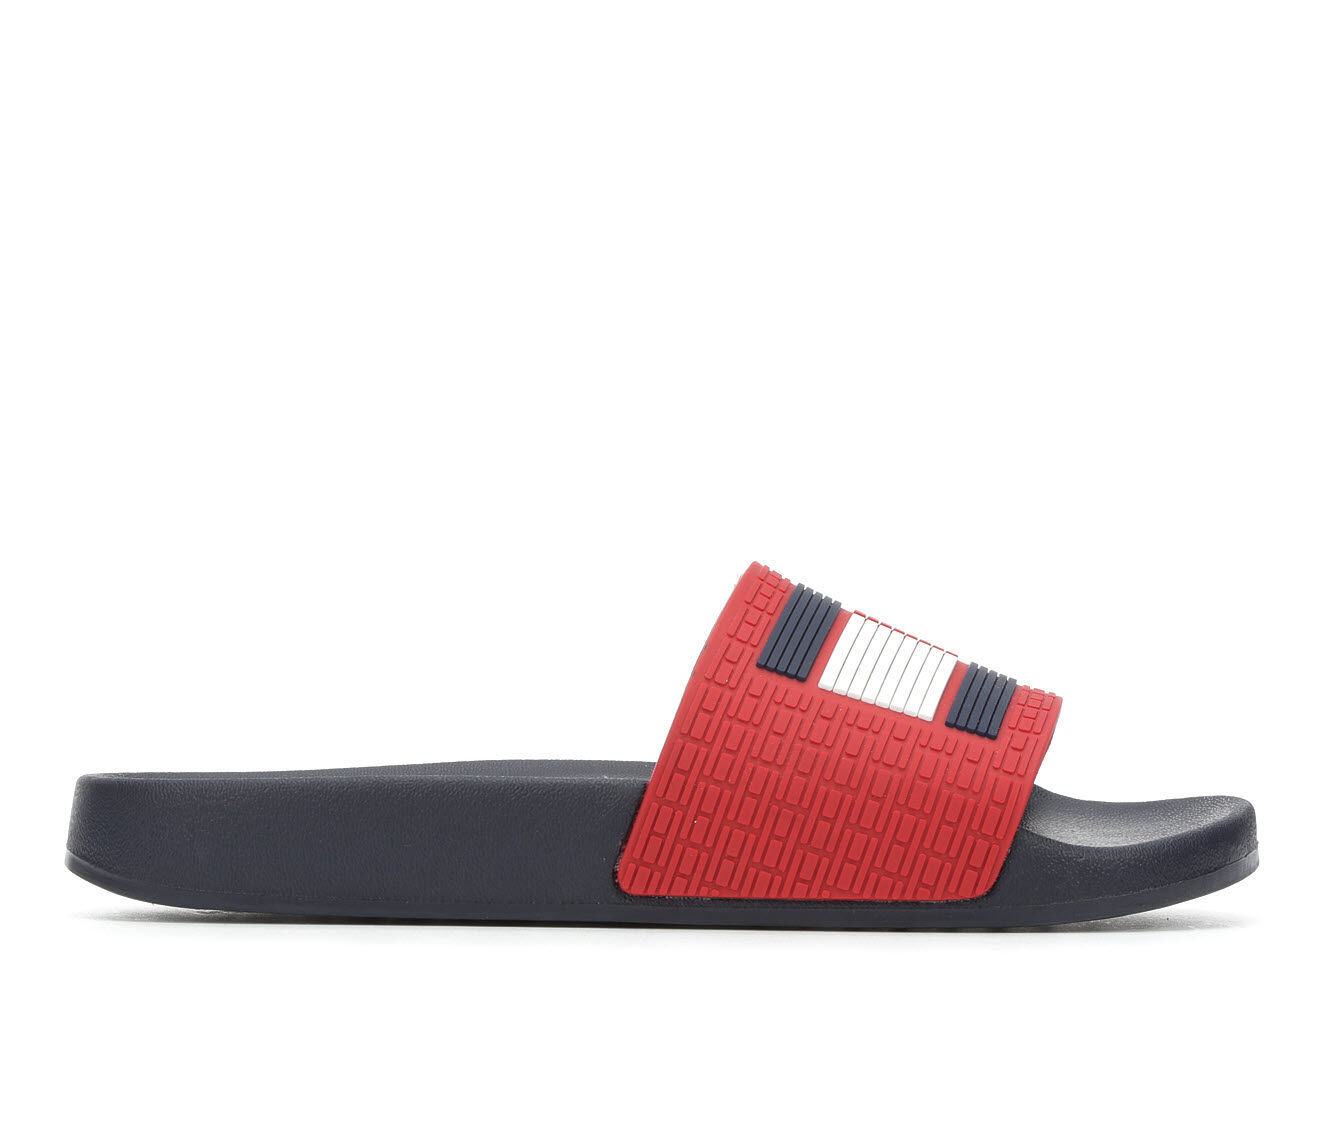 Women's Tommy Hilfiger Delany Sandals Red/Navy/White